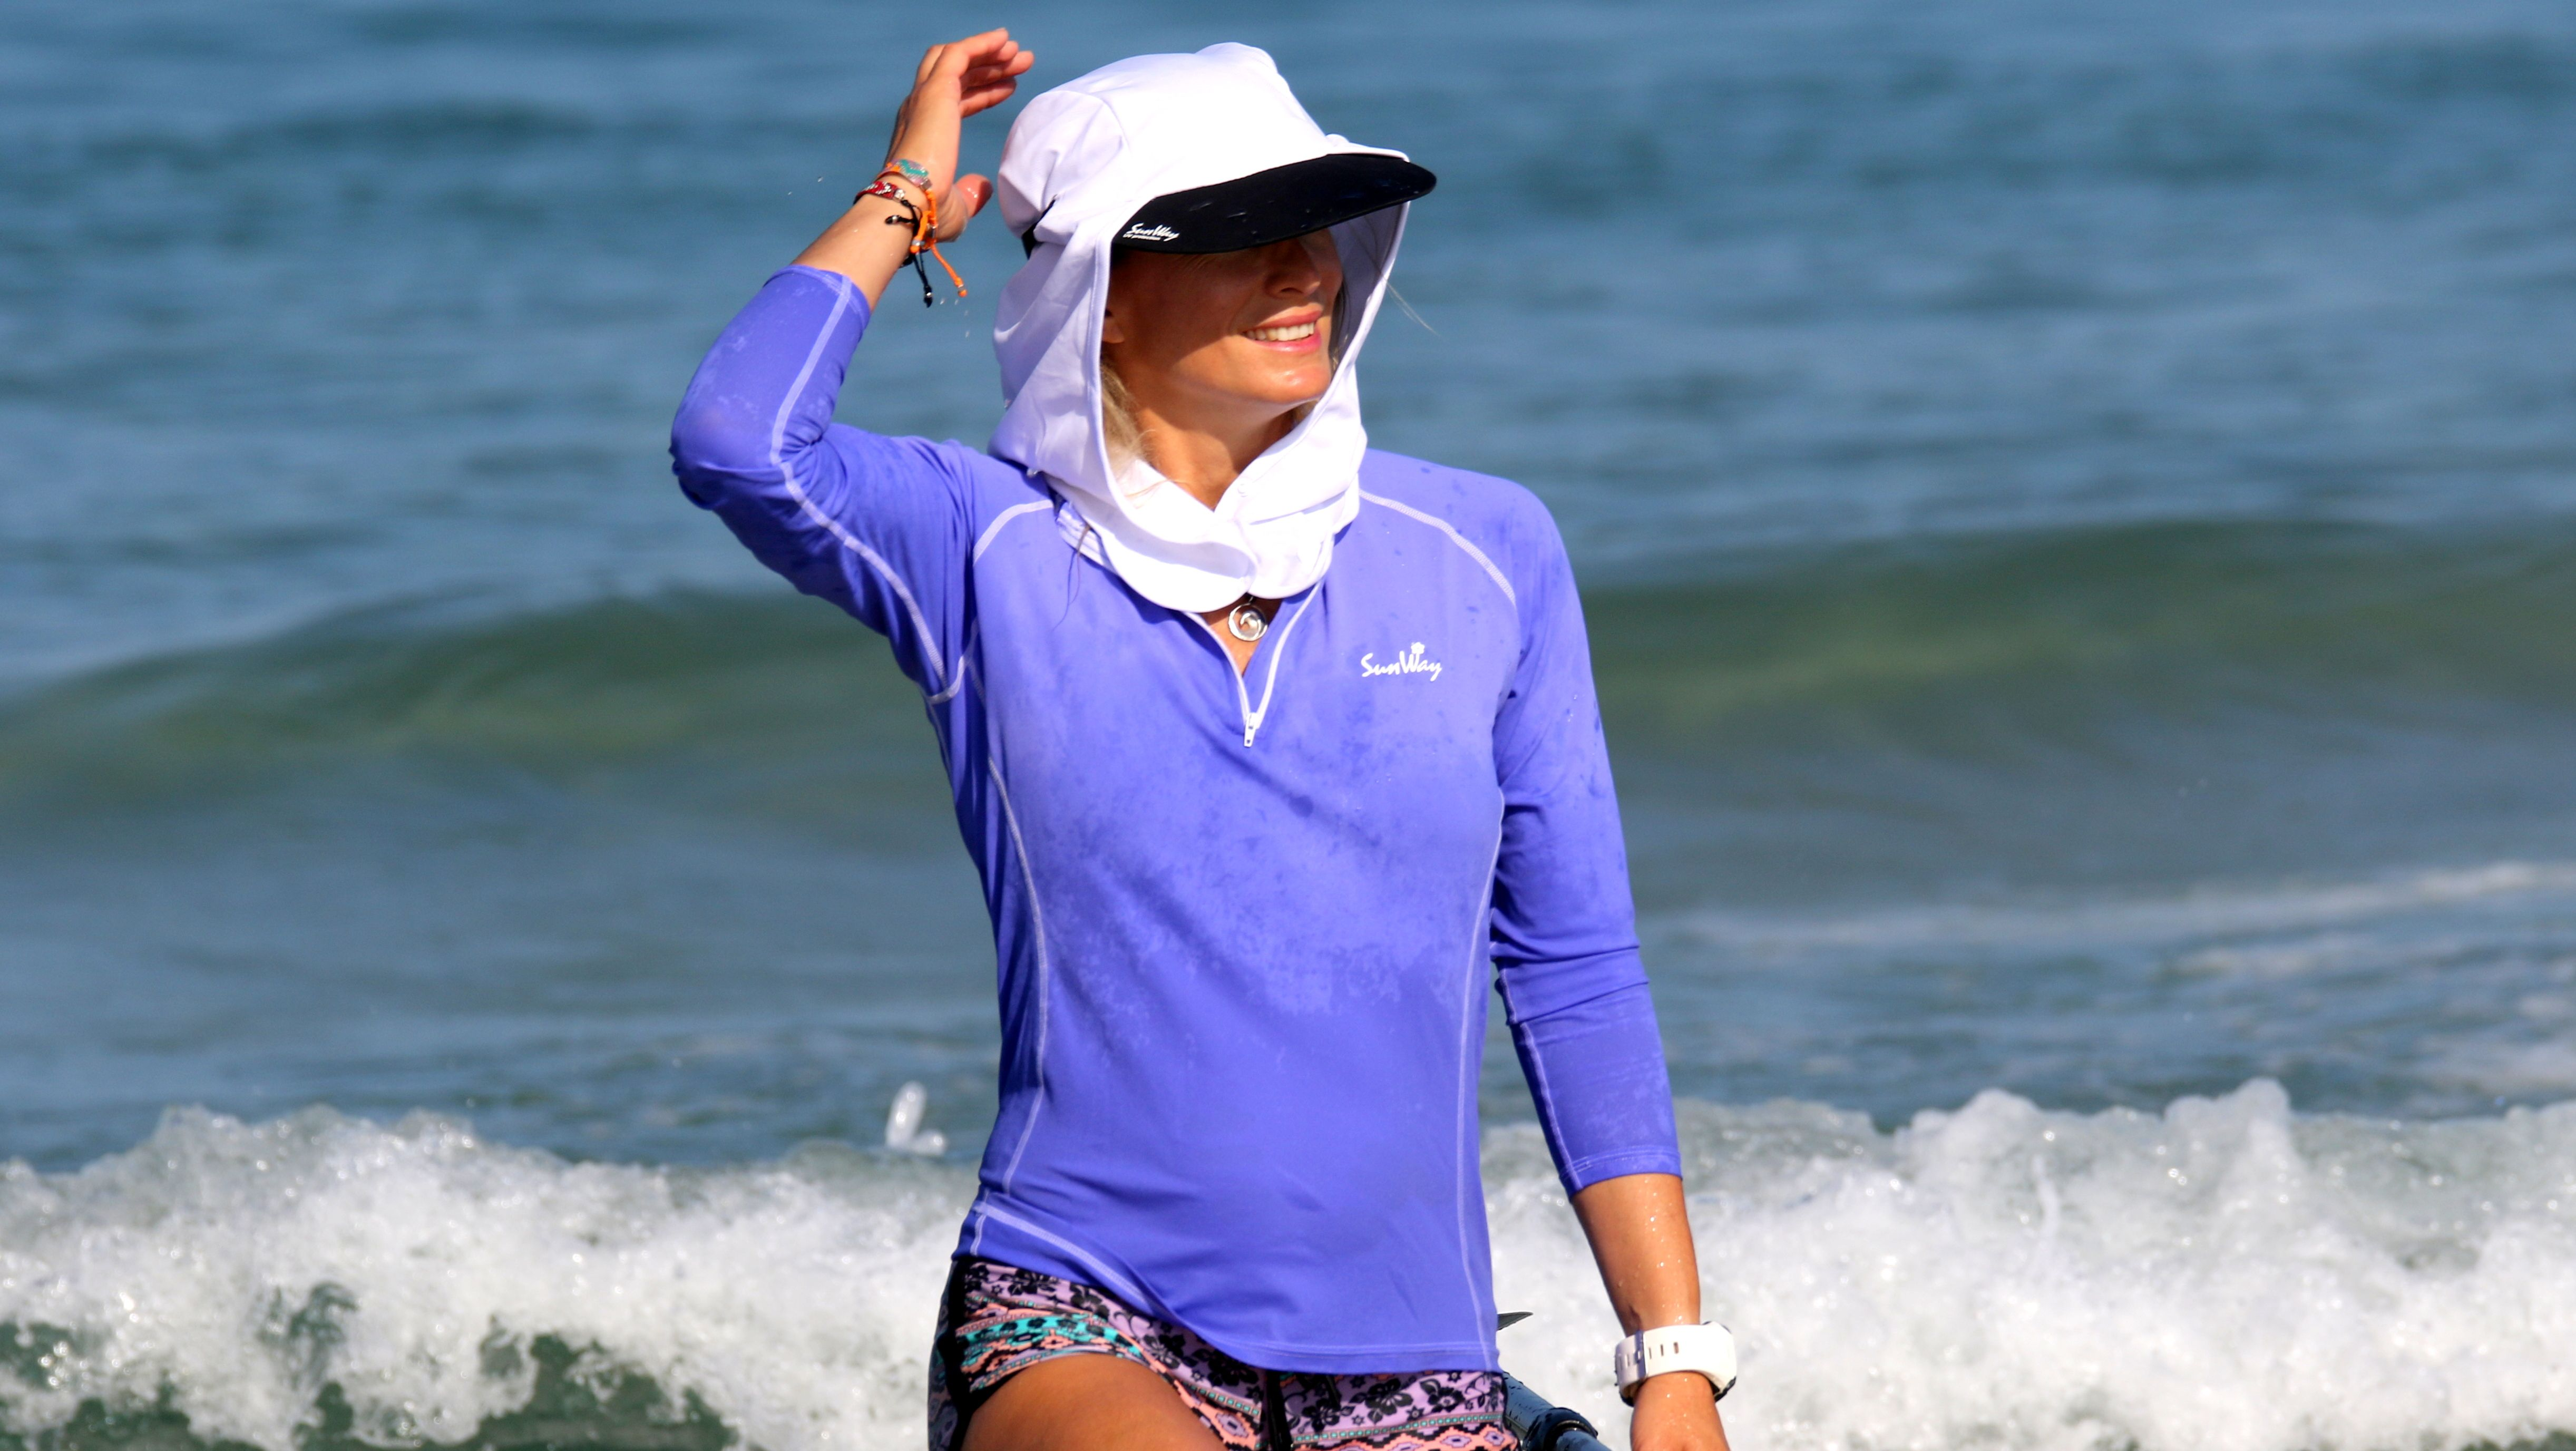 Sunway Adults Legionnaire Sun Hat Provides Best Uv Protection For Men And For Women The Legionnarie Cup Is Made From Lightw Sun Hats Extra Fabric Wide Brimmed